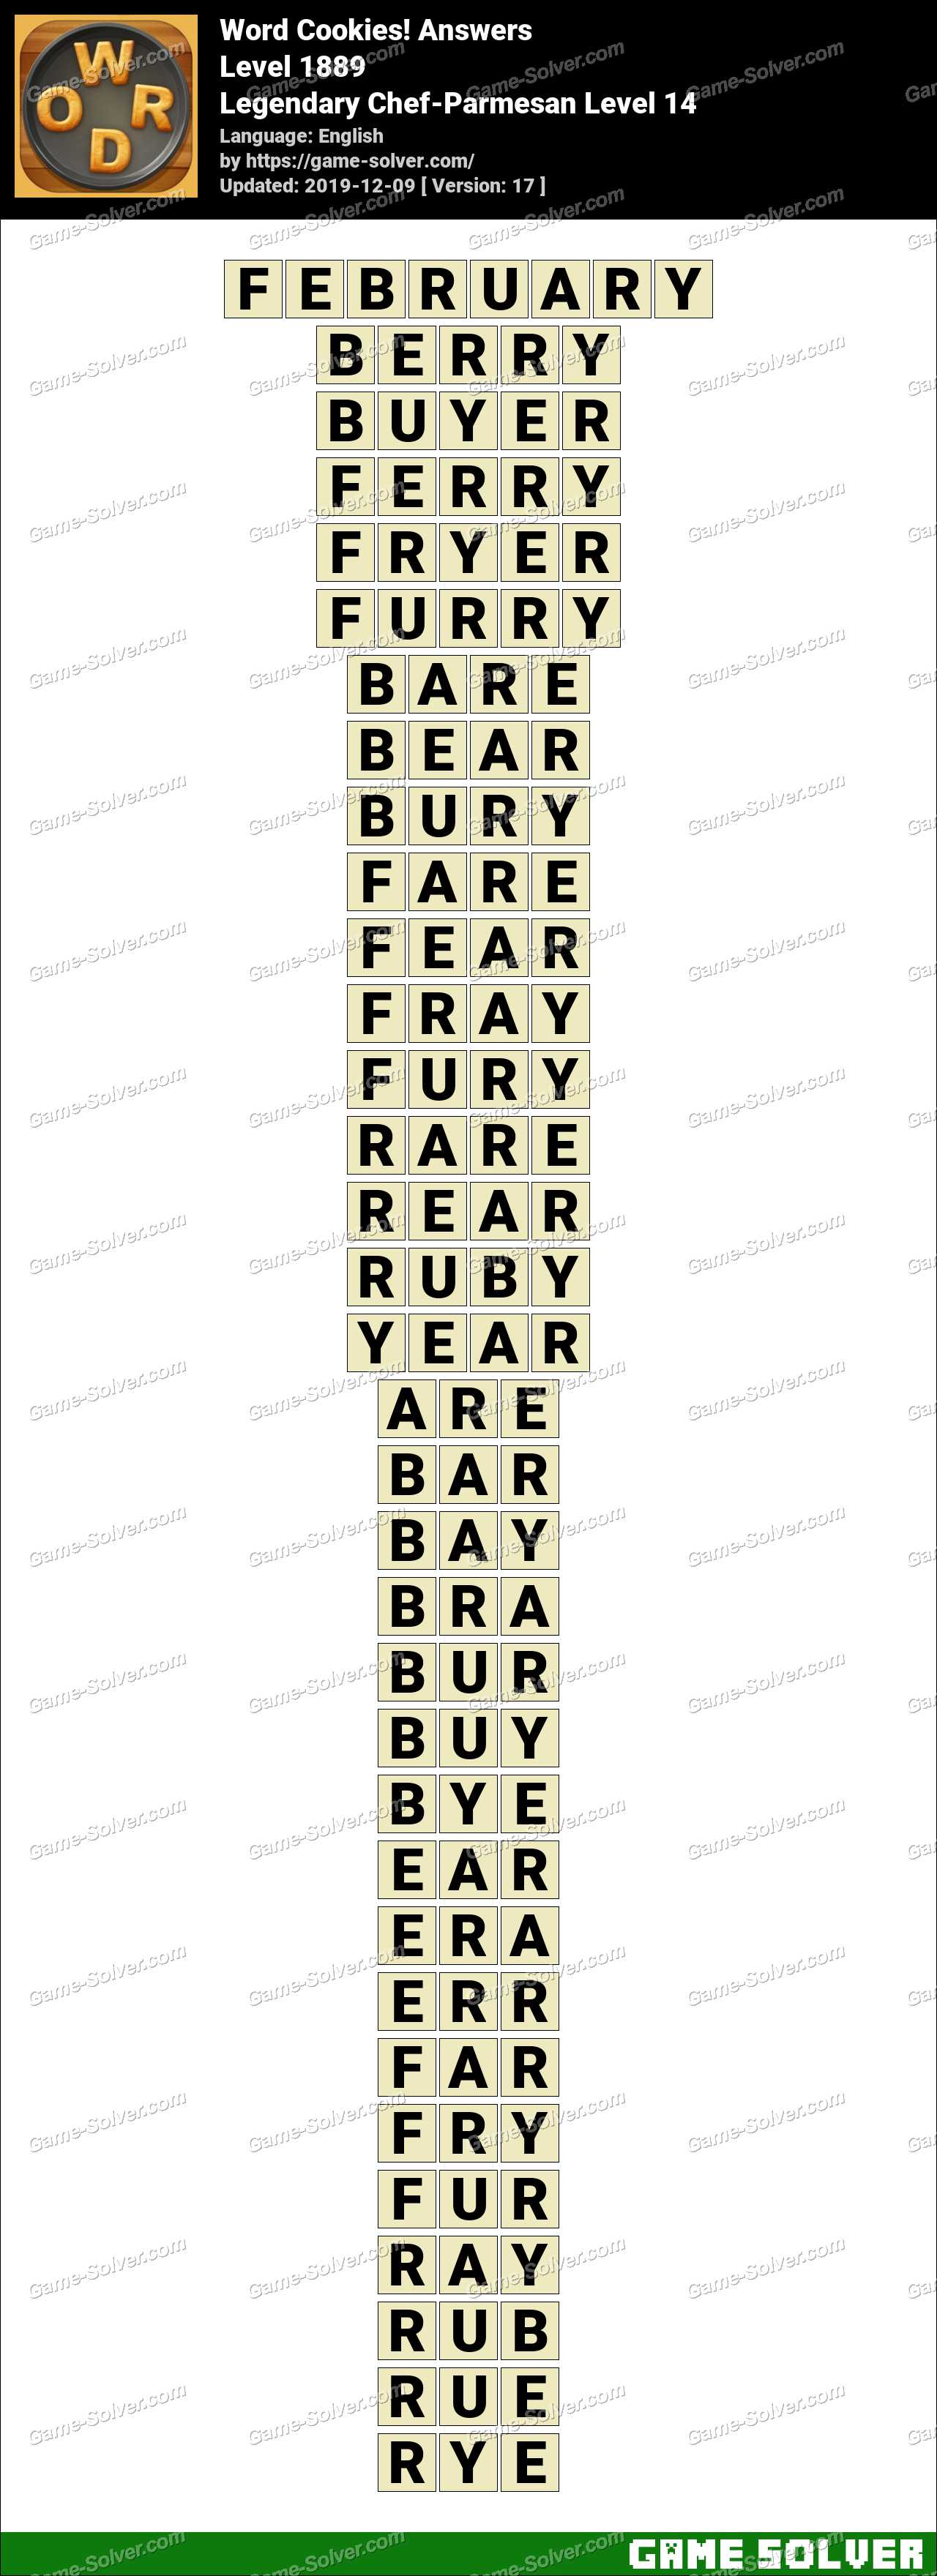 Word Cookies Legendary Chef-Parmesan Level 14 Answers